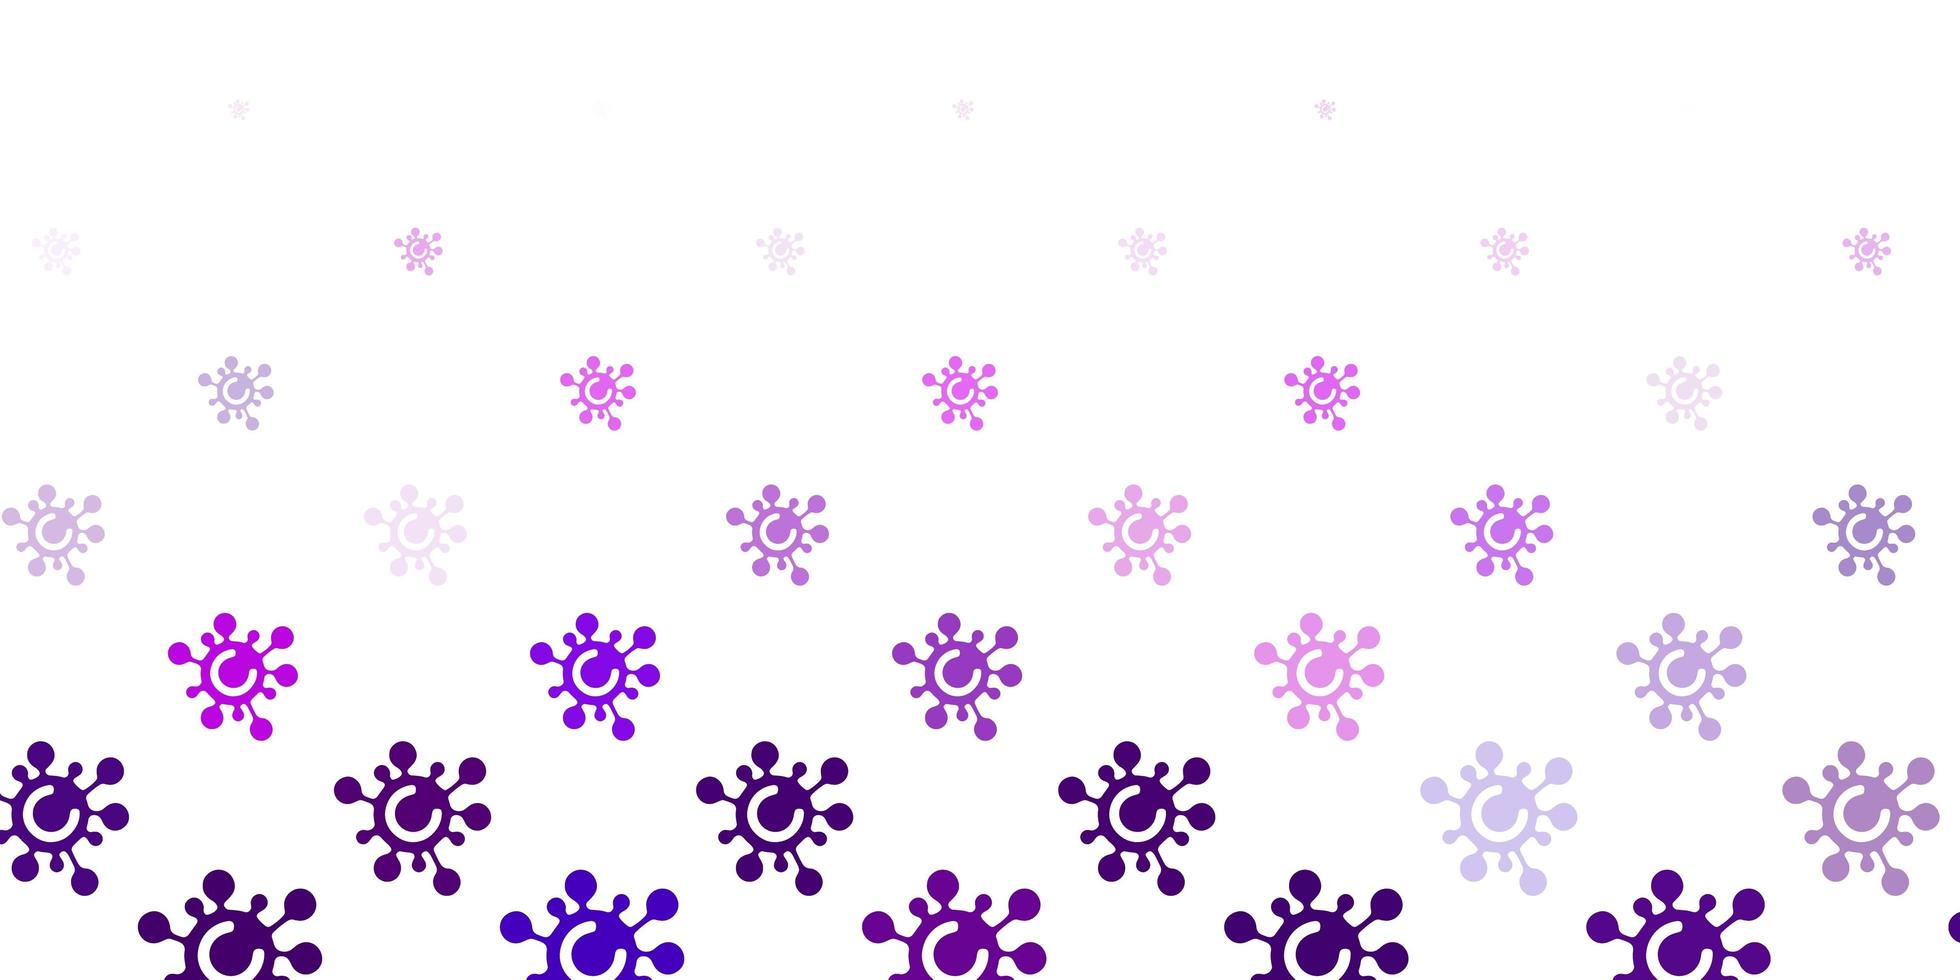 Light Purple vector background with covid-19 symbols.